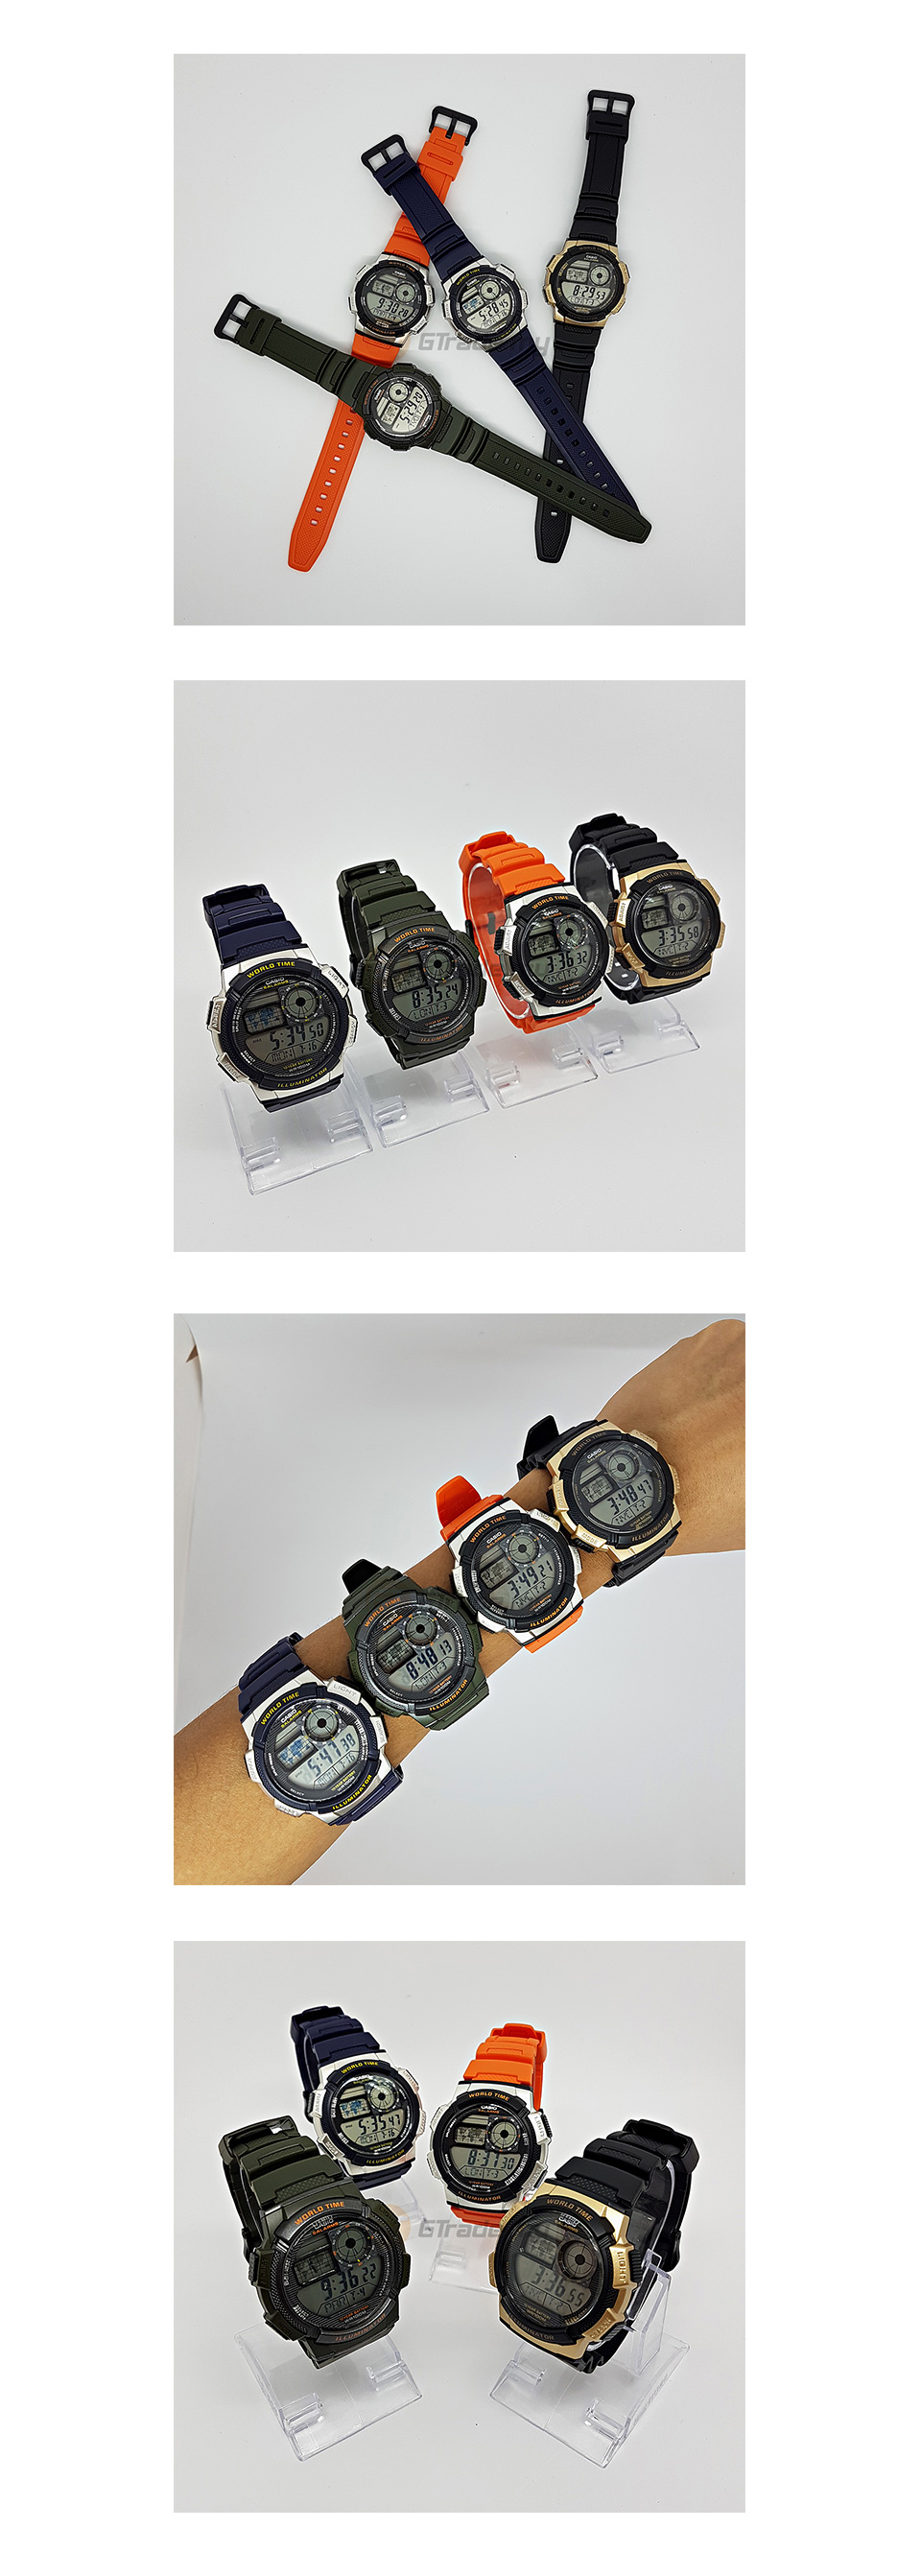 casio-standard-digital-watch-10-years-battery-life-world-time-100-meter-water-resistance-ae-1000w-1a3v-p